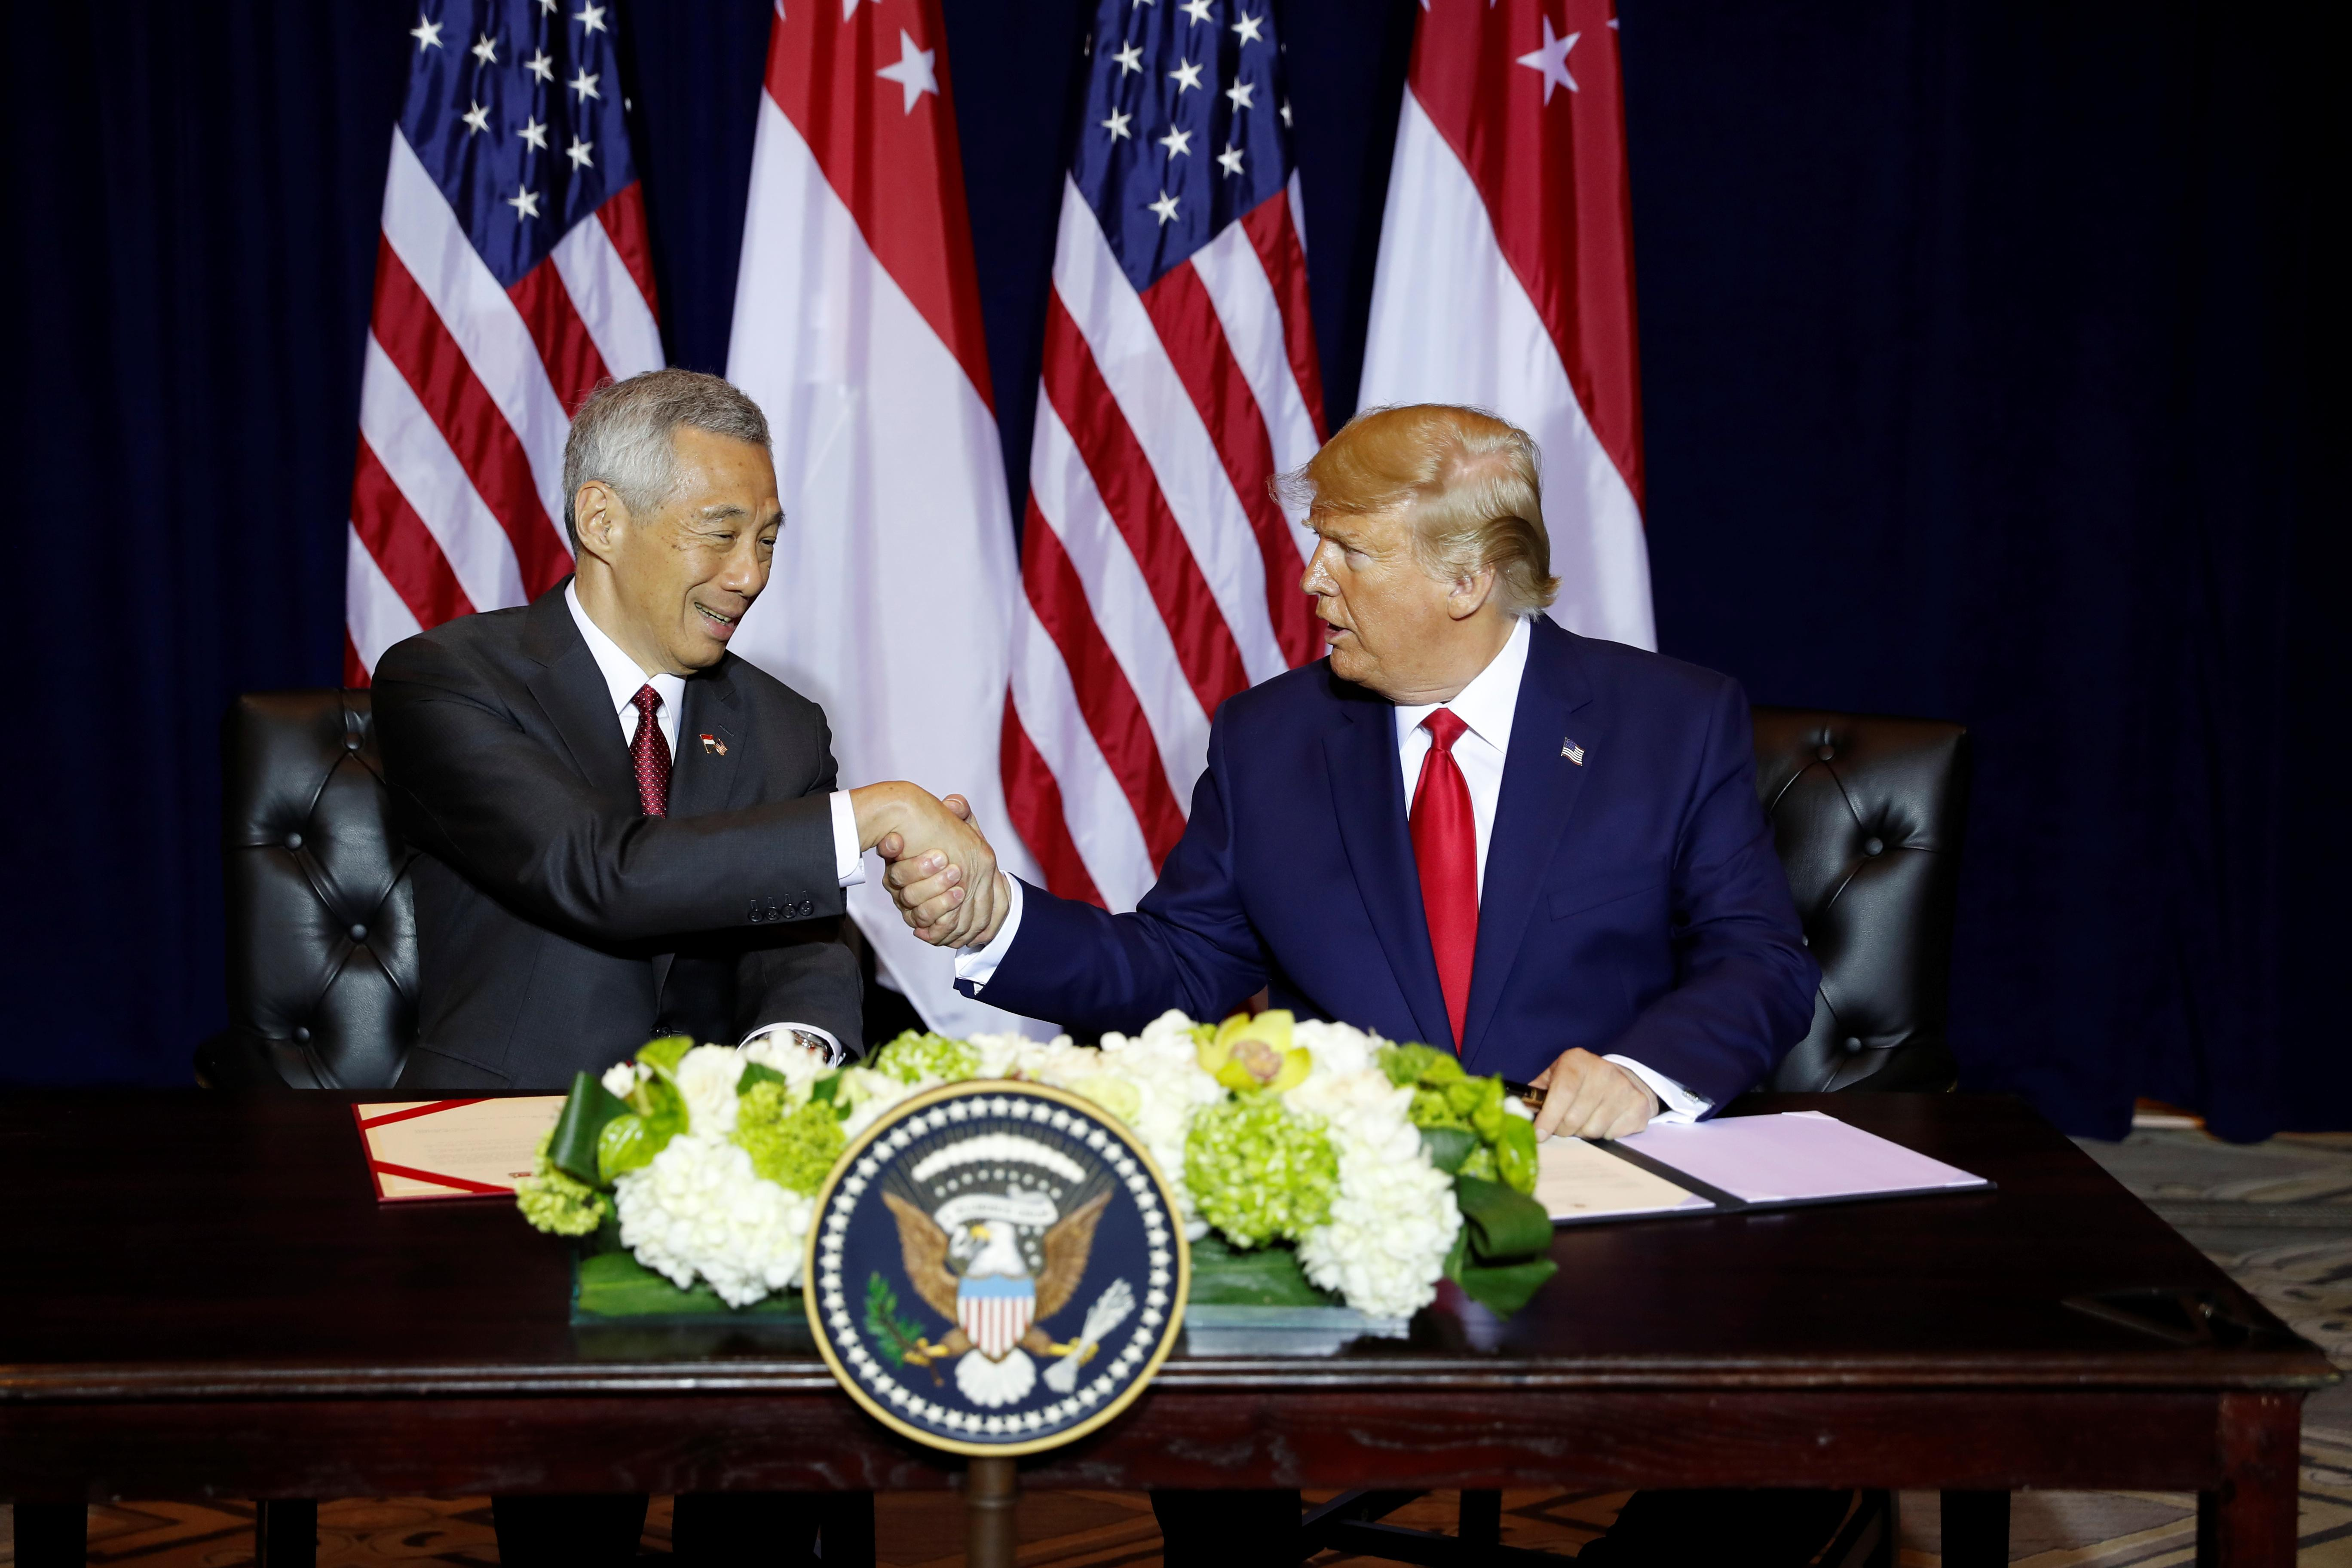 Having to pick between US and China would be a 'very painful choice', says PM Lee on CNN